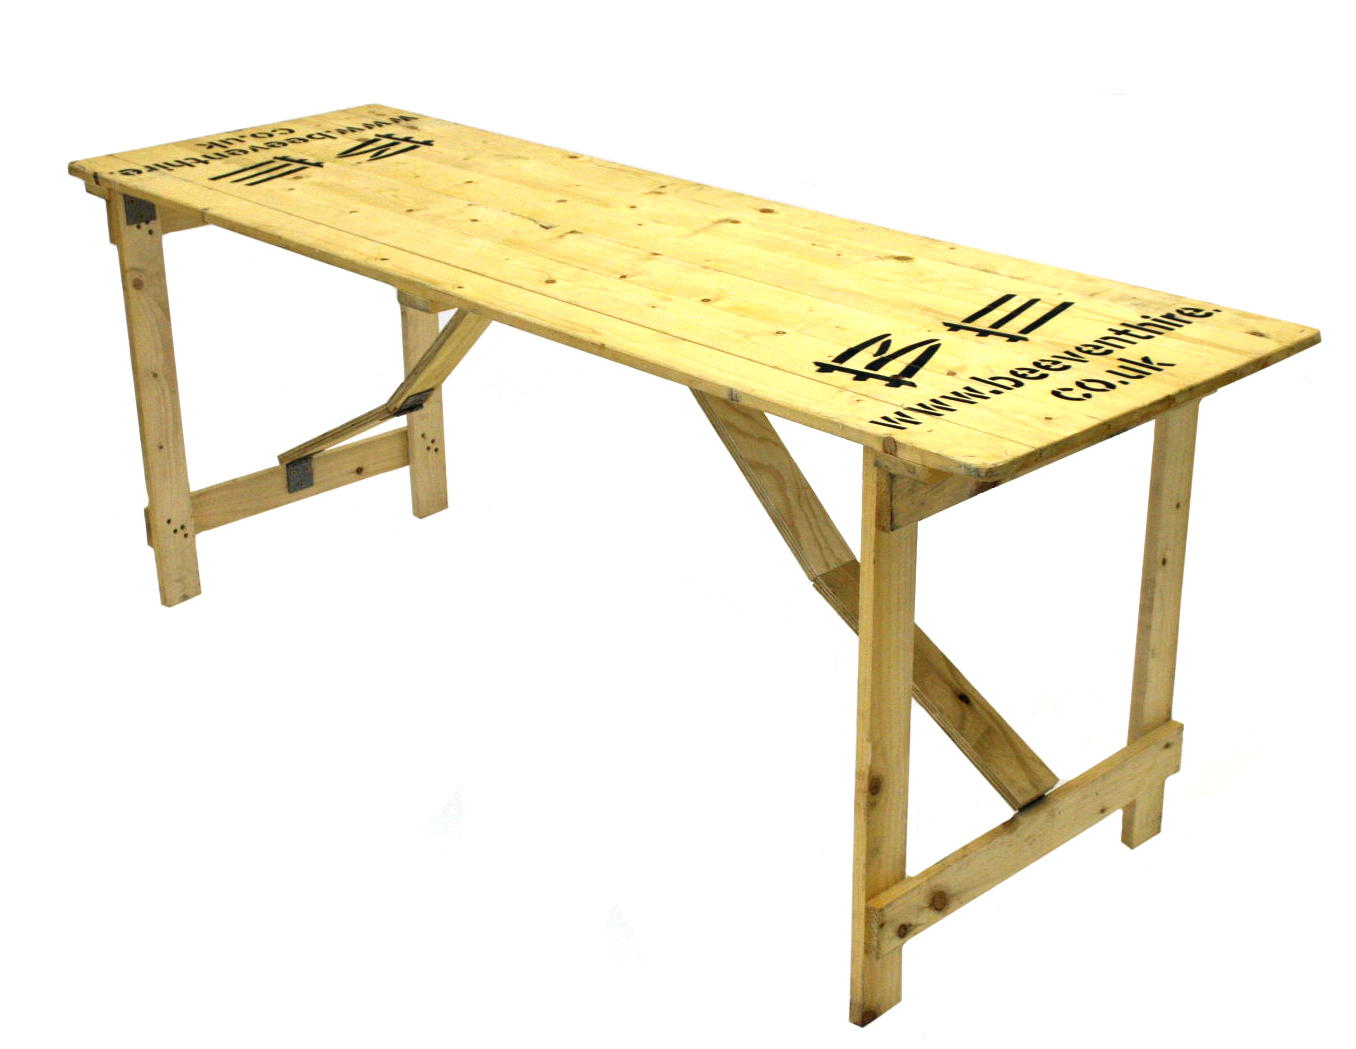 5' x 2' Trestle Table - BE Event Hire